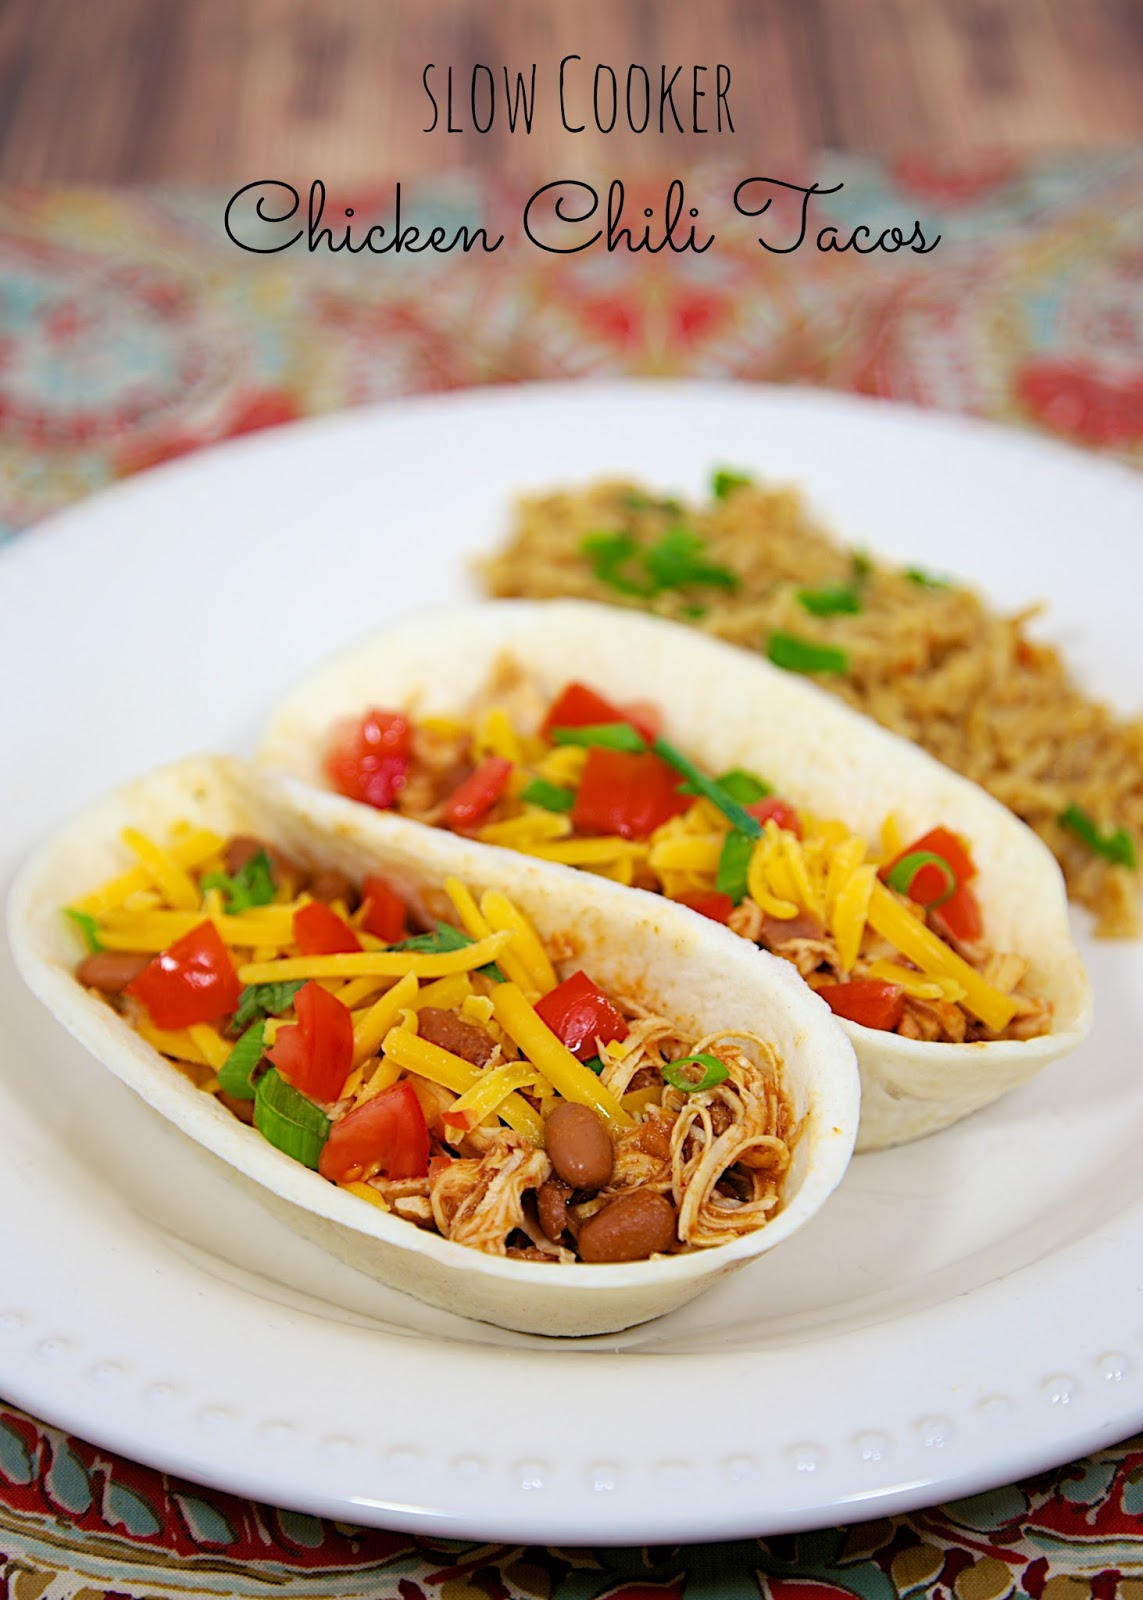 Slow Cooker Chicken Chili Tacos - only 3 ingredients! Great for tacos, topping a salad, or nachos. Makes a ton! Freeze leftovers for later. Everyone loves this easy Slow Cooker Mexican Chicken recipe!